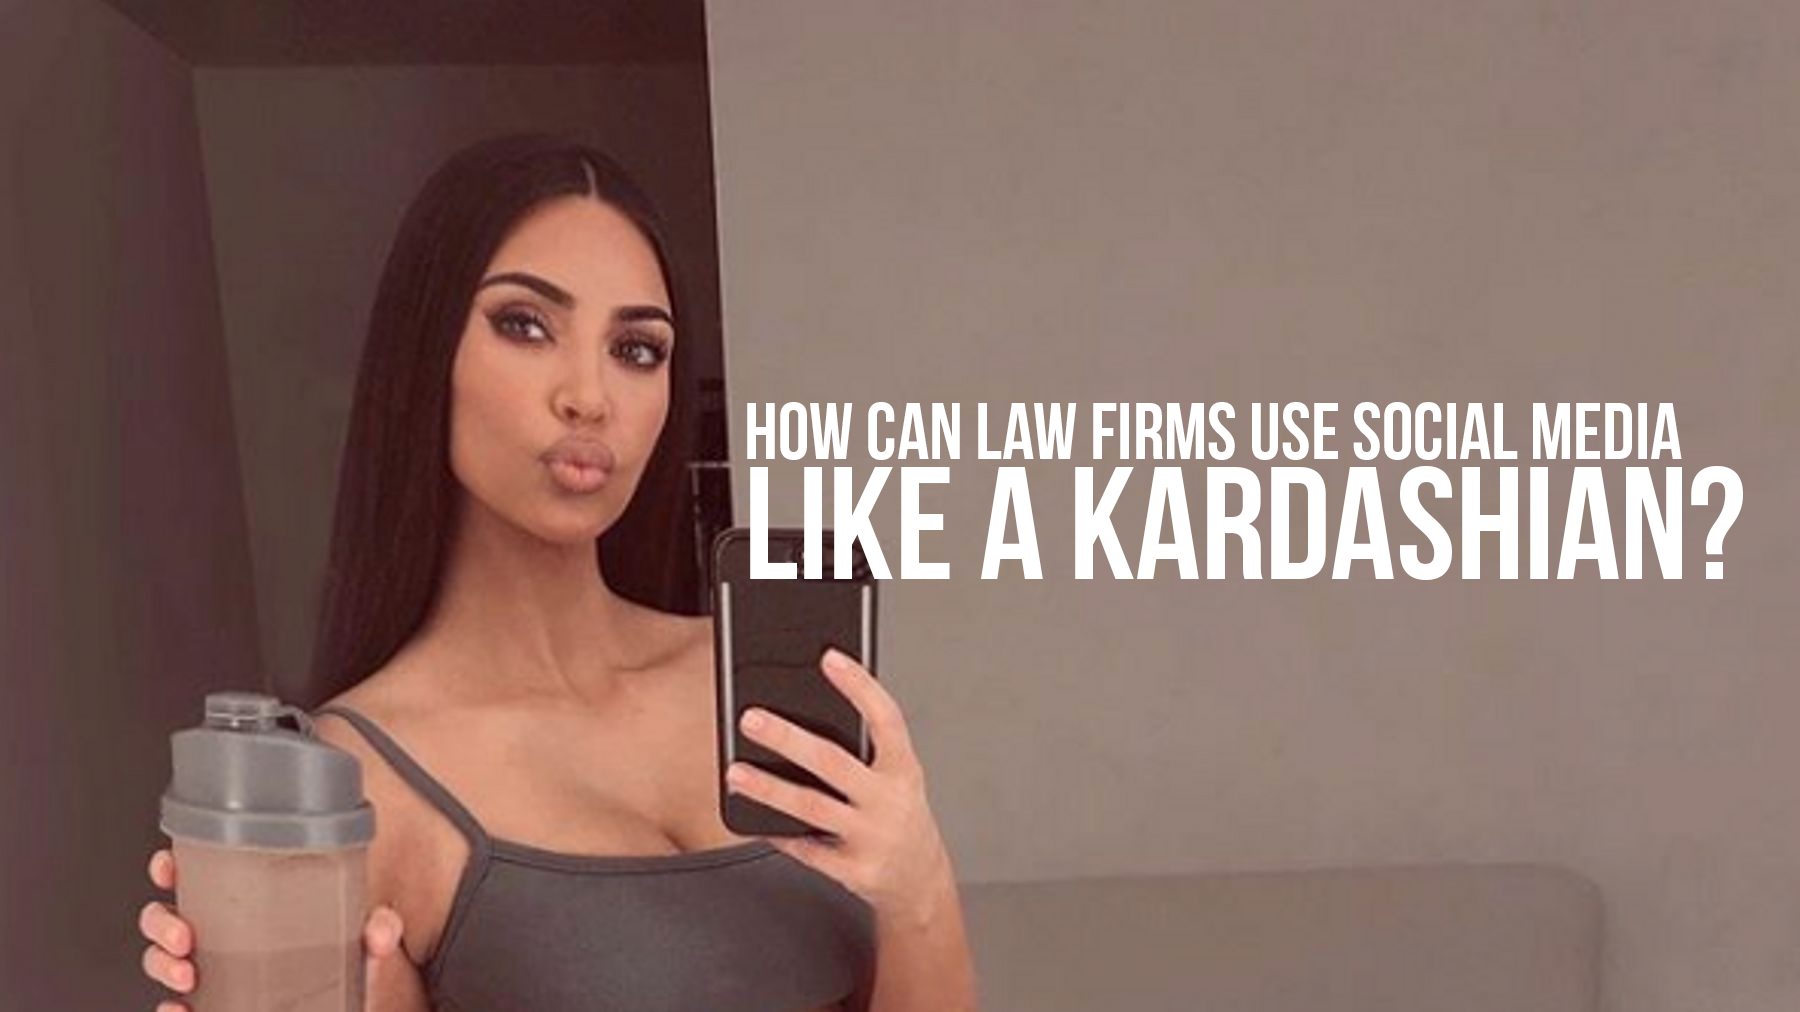 How can a law firm use social media like a Kardashian?